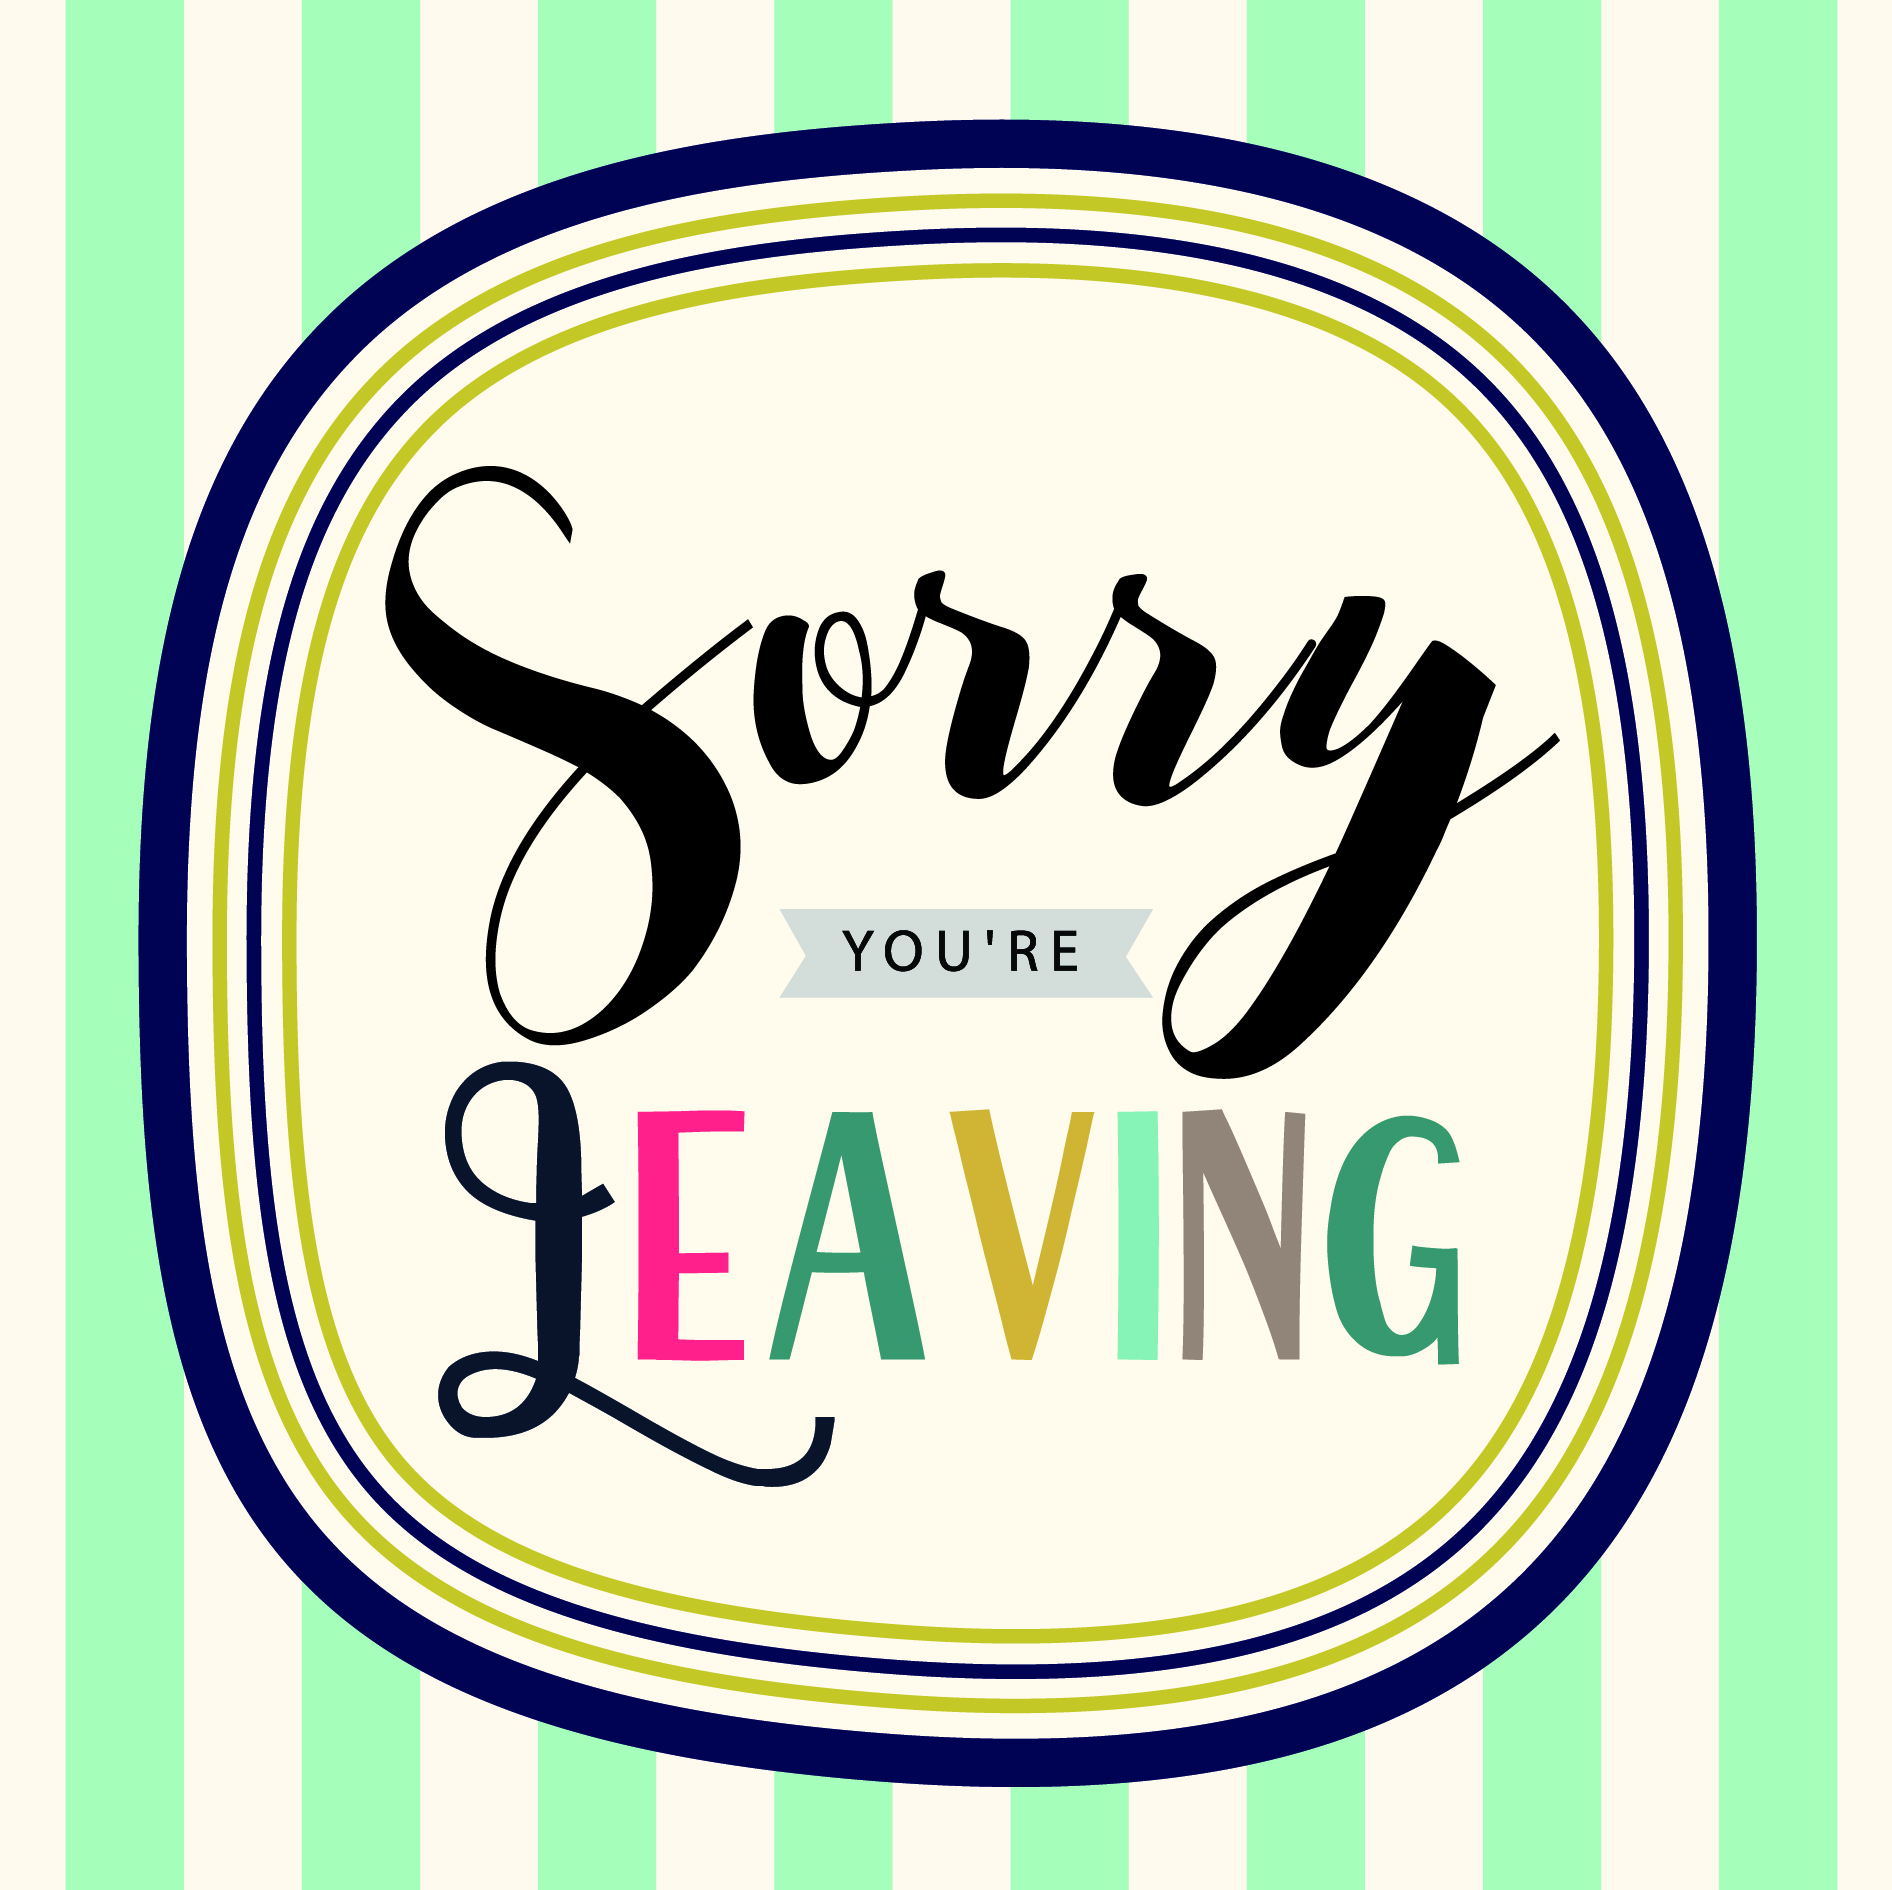 Sorry You Re Leaving